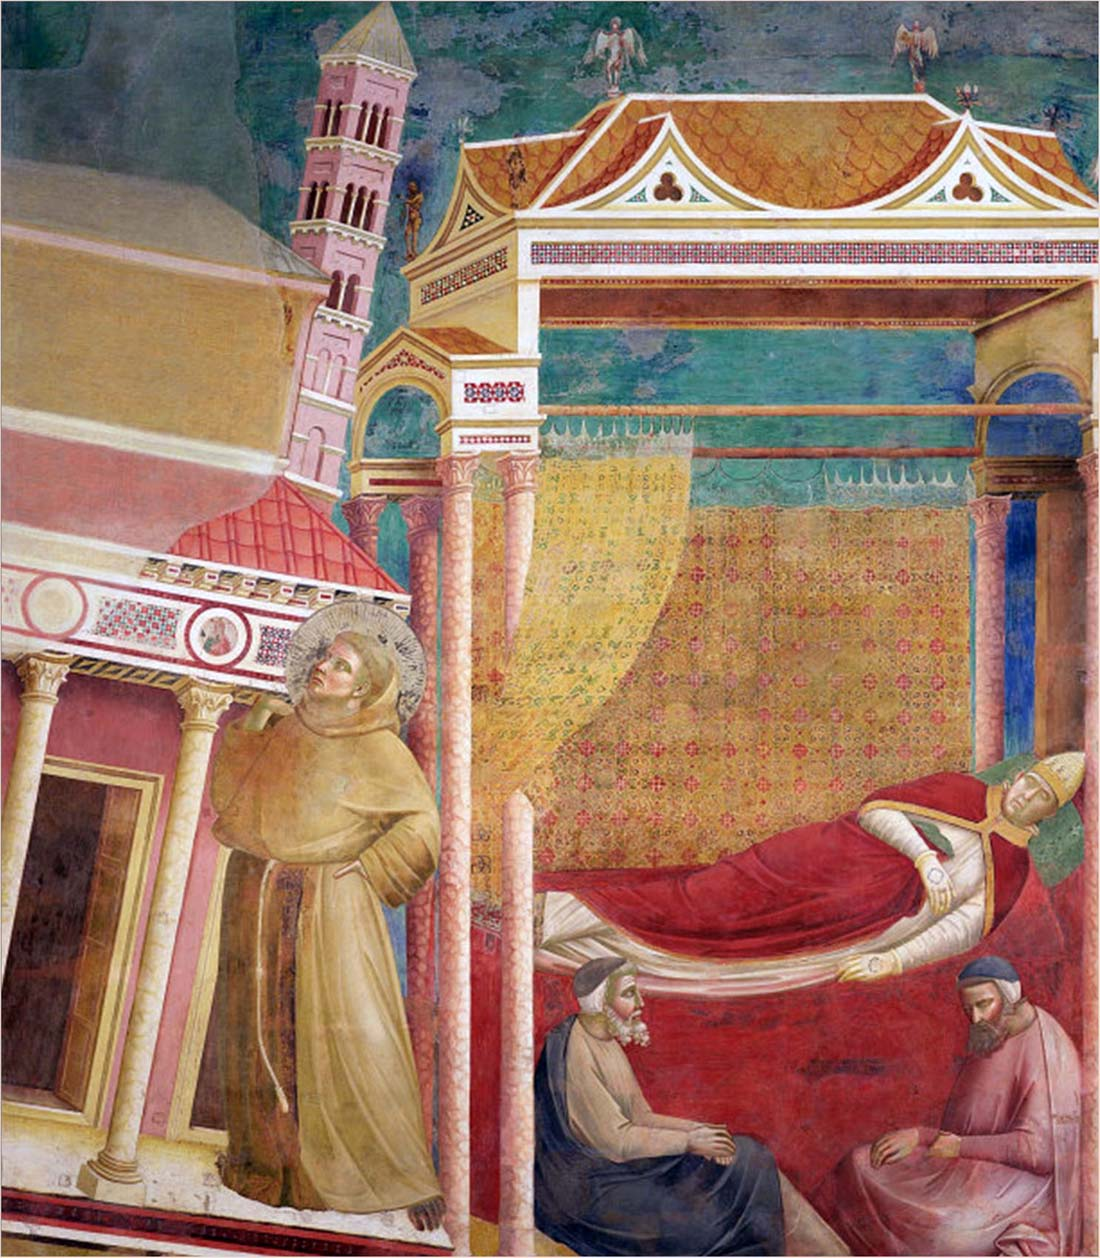 cimabue and giotto relationship